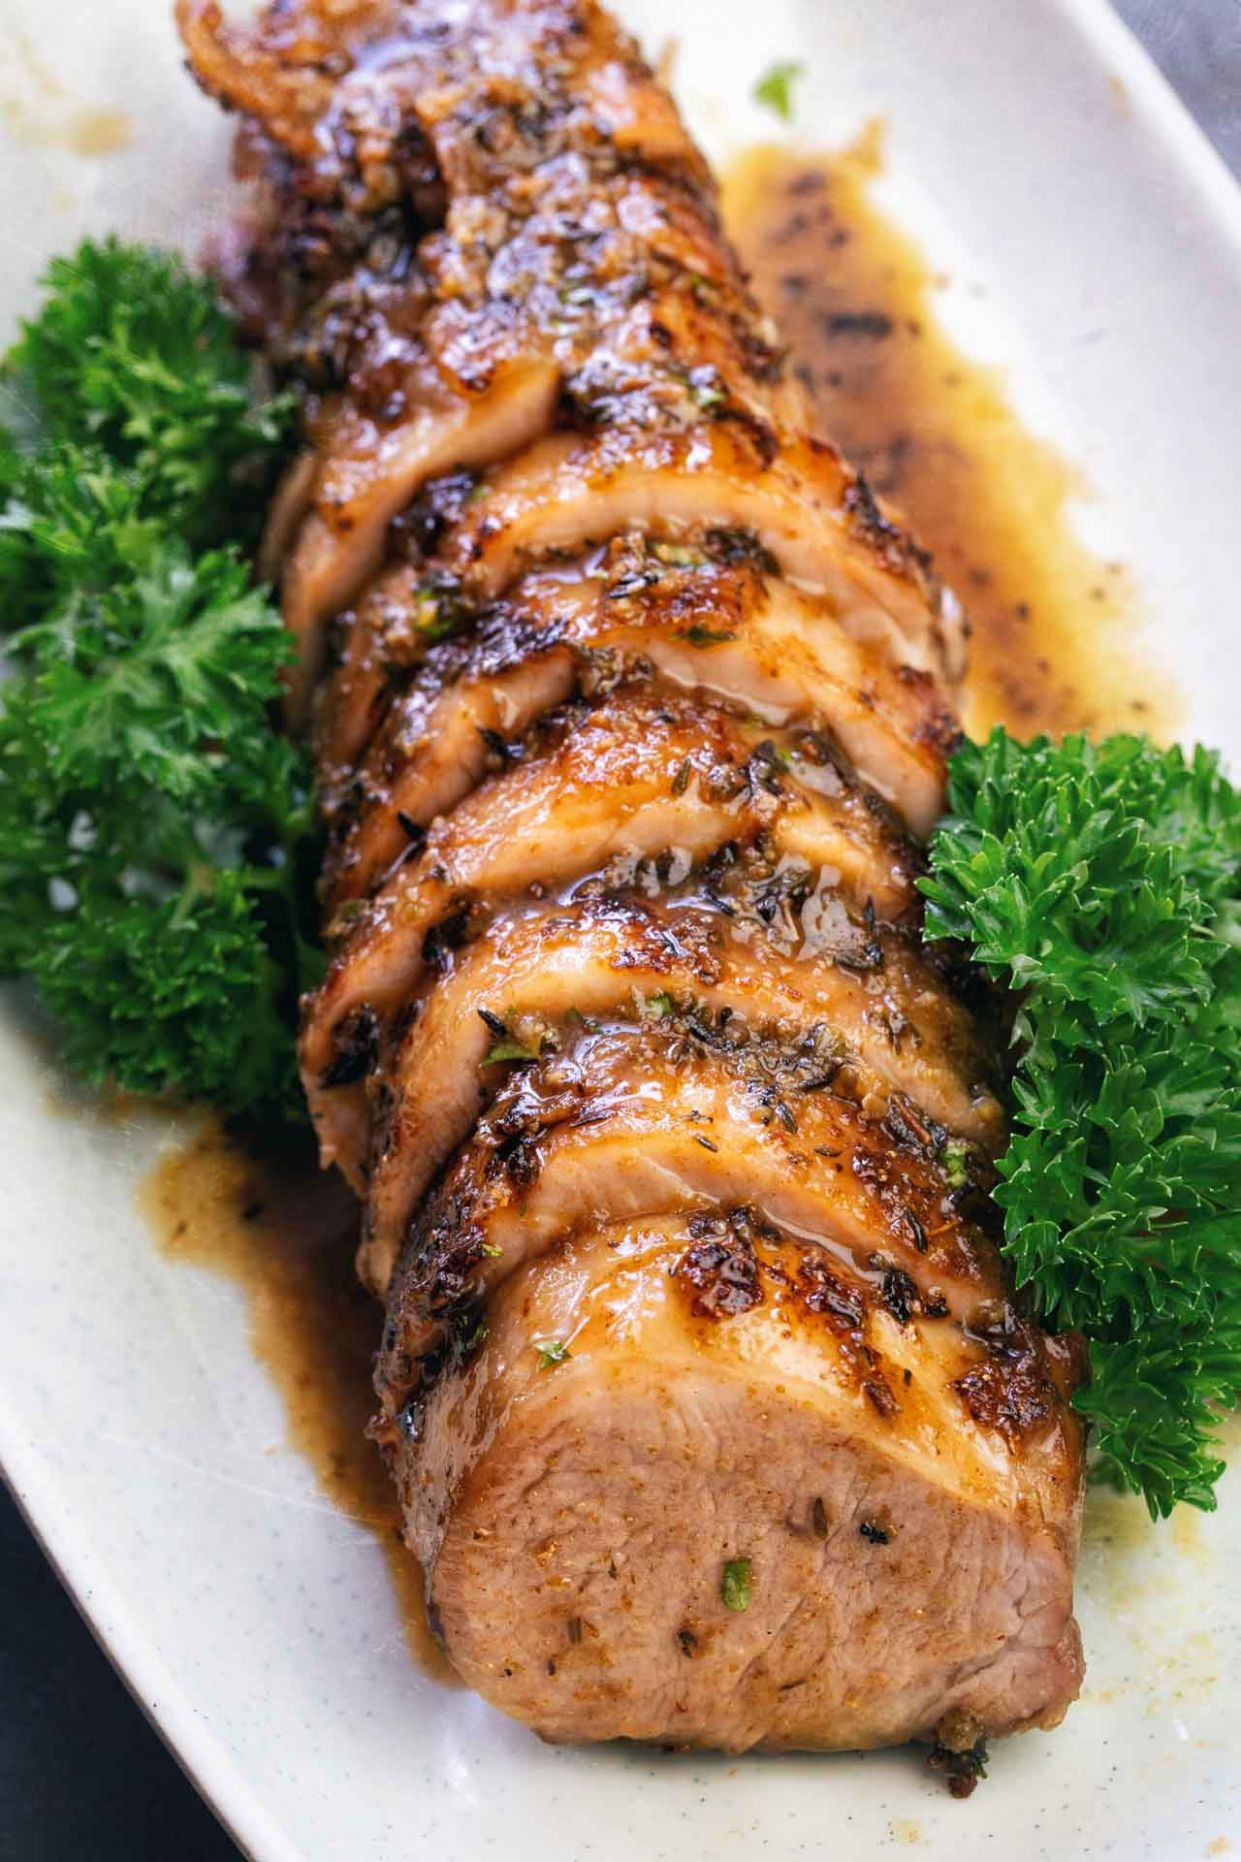 Roasted Pork Tenderloin Recipe - Pork Tenderloin Recipes